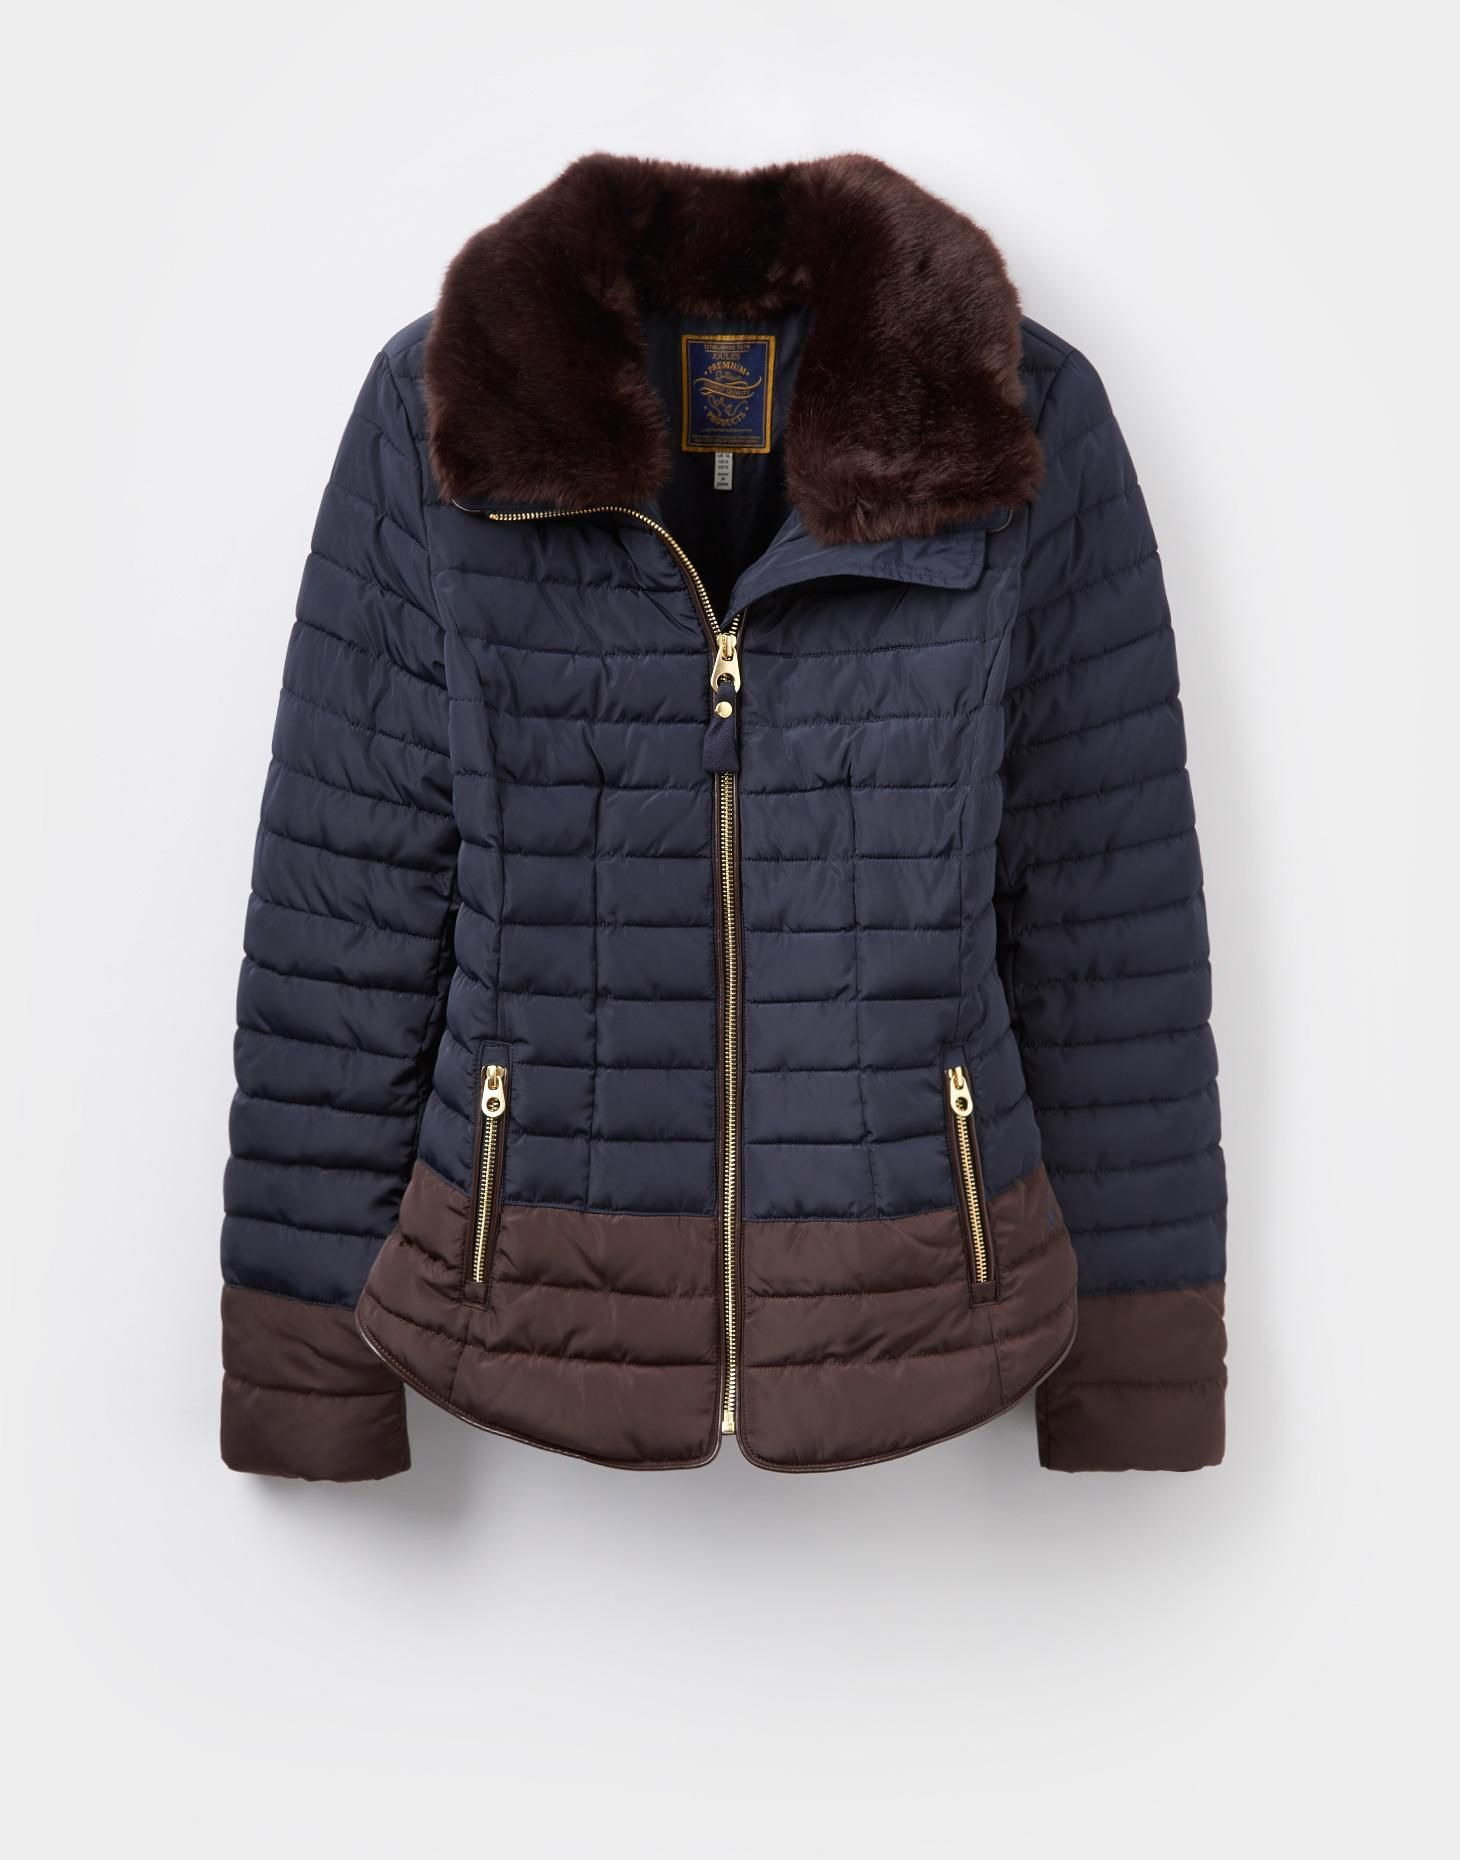 Gosfield Marine Navy Padded Jacket | Joules UK | Style Me Pretty ...